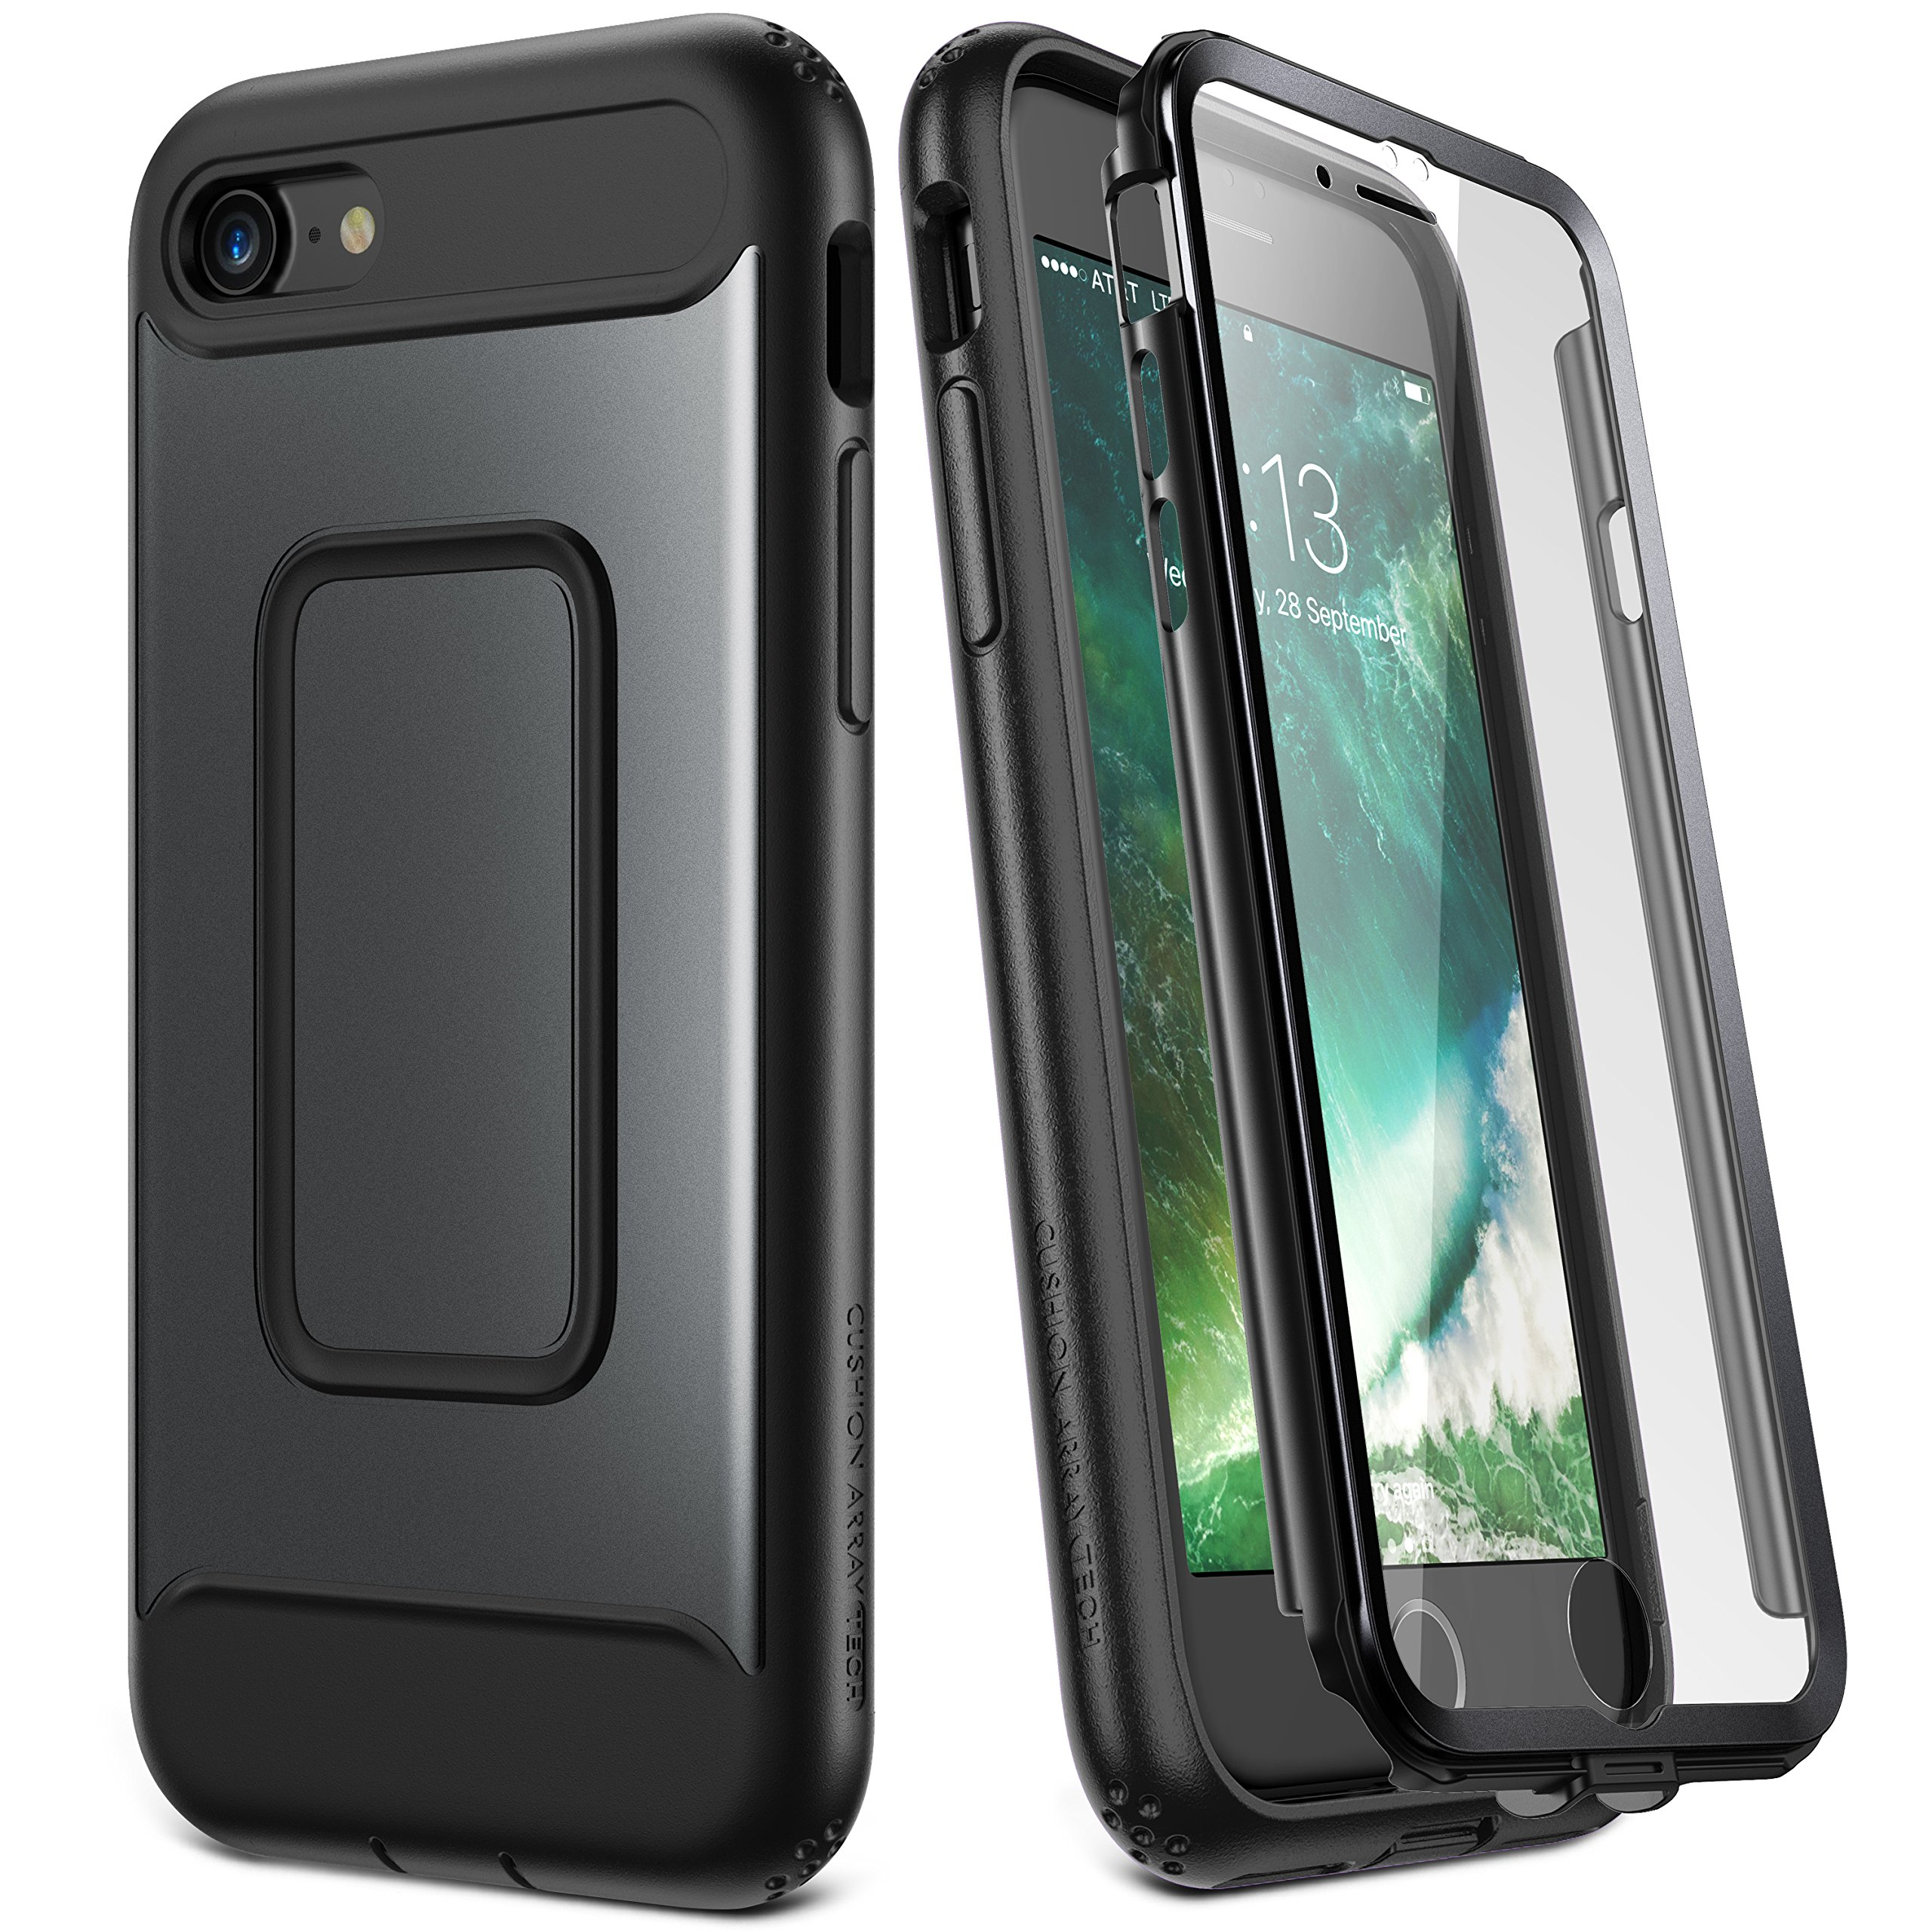 YOUMAKER Case for iPhone 8 & iPhone 7, Full Body with Built-in Screen Protector Heavy Duty Protection Shockproof Slim Fit Cover for Apple iPhone 8 (2017) / iPhone 7 (2016) 4.7 Inch - Black by YOUMAKER